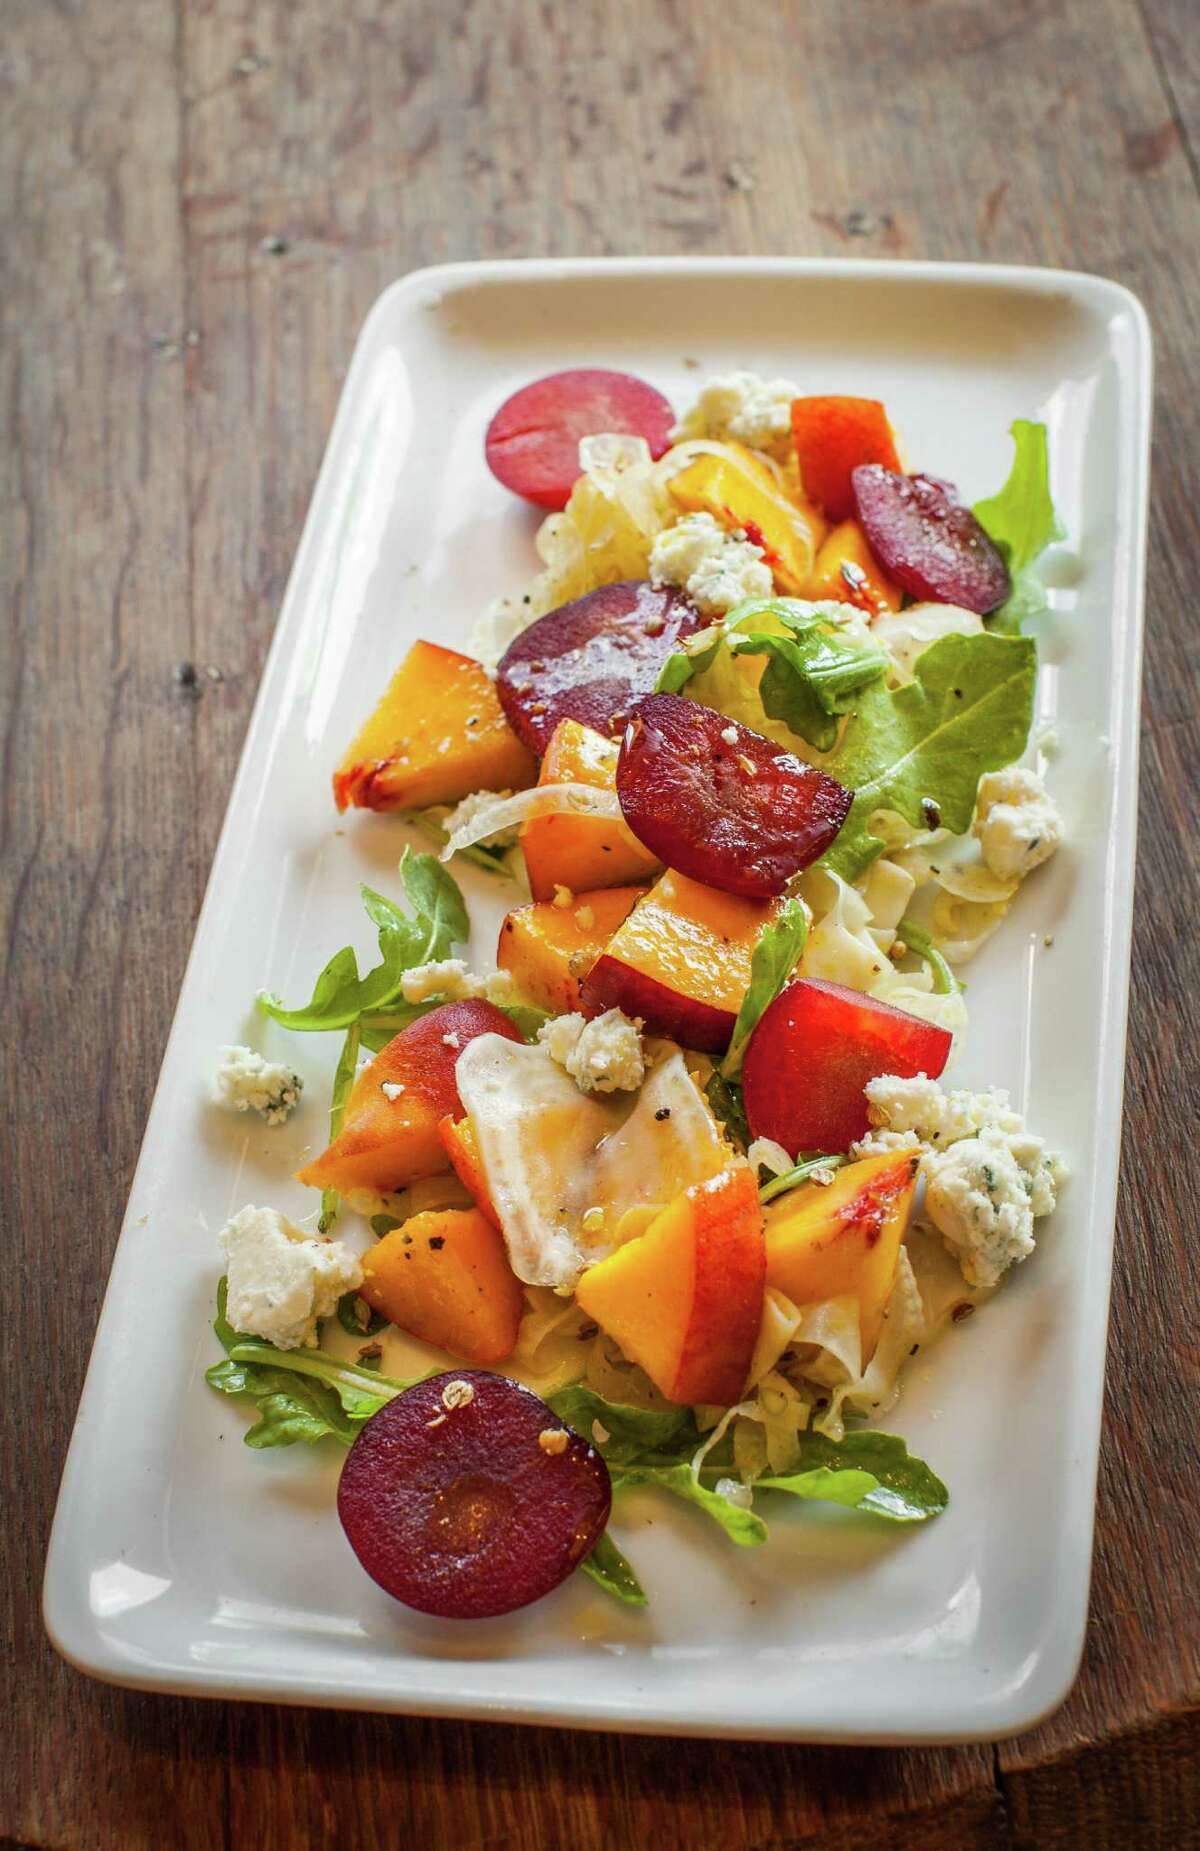 Coltivare: Salad of Texas peaches, red plums, fennel, Point Reyes blue cheese and mizuna greens Coltivare's texas peaches, red plums, fennel, pt. reyes blue and mizzen.